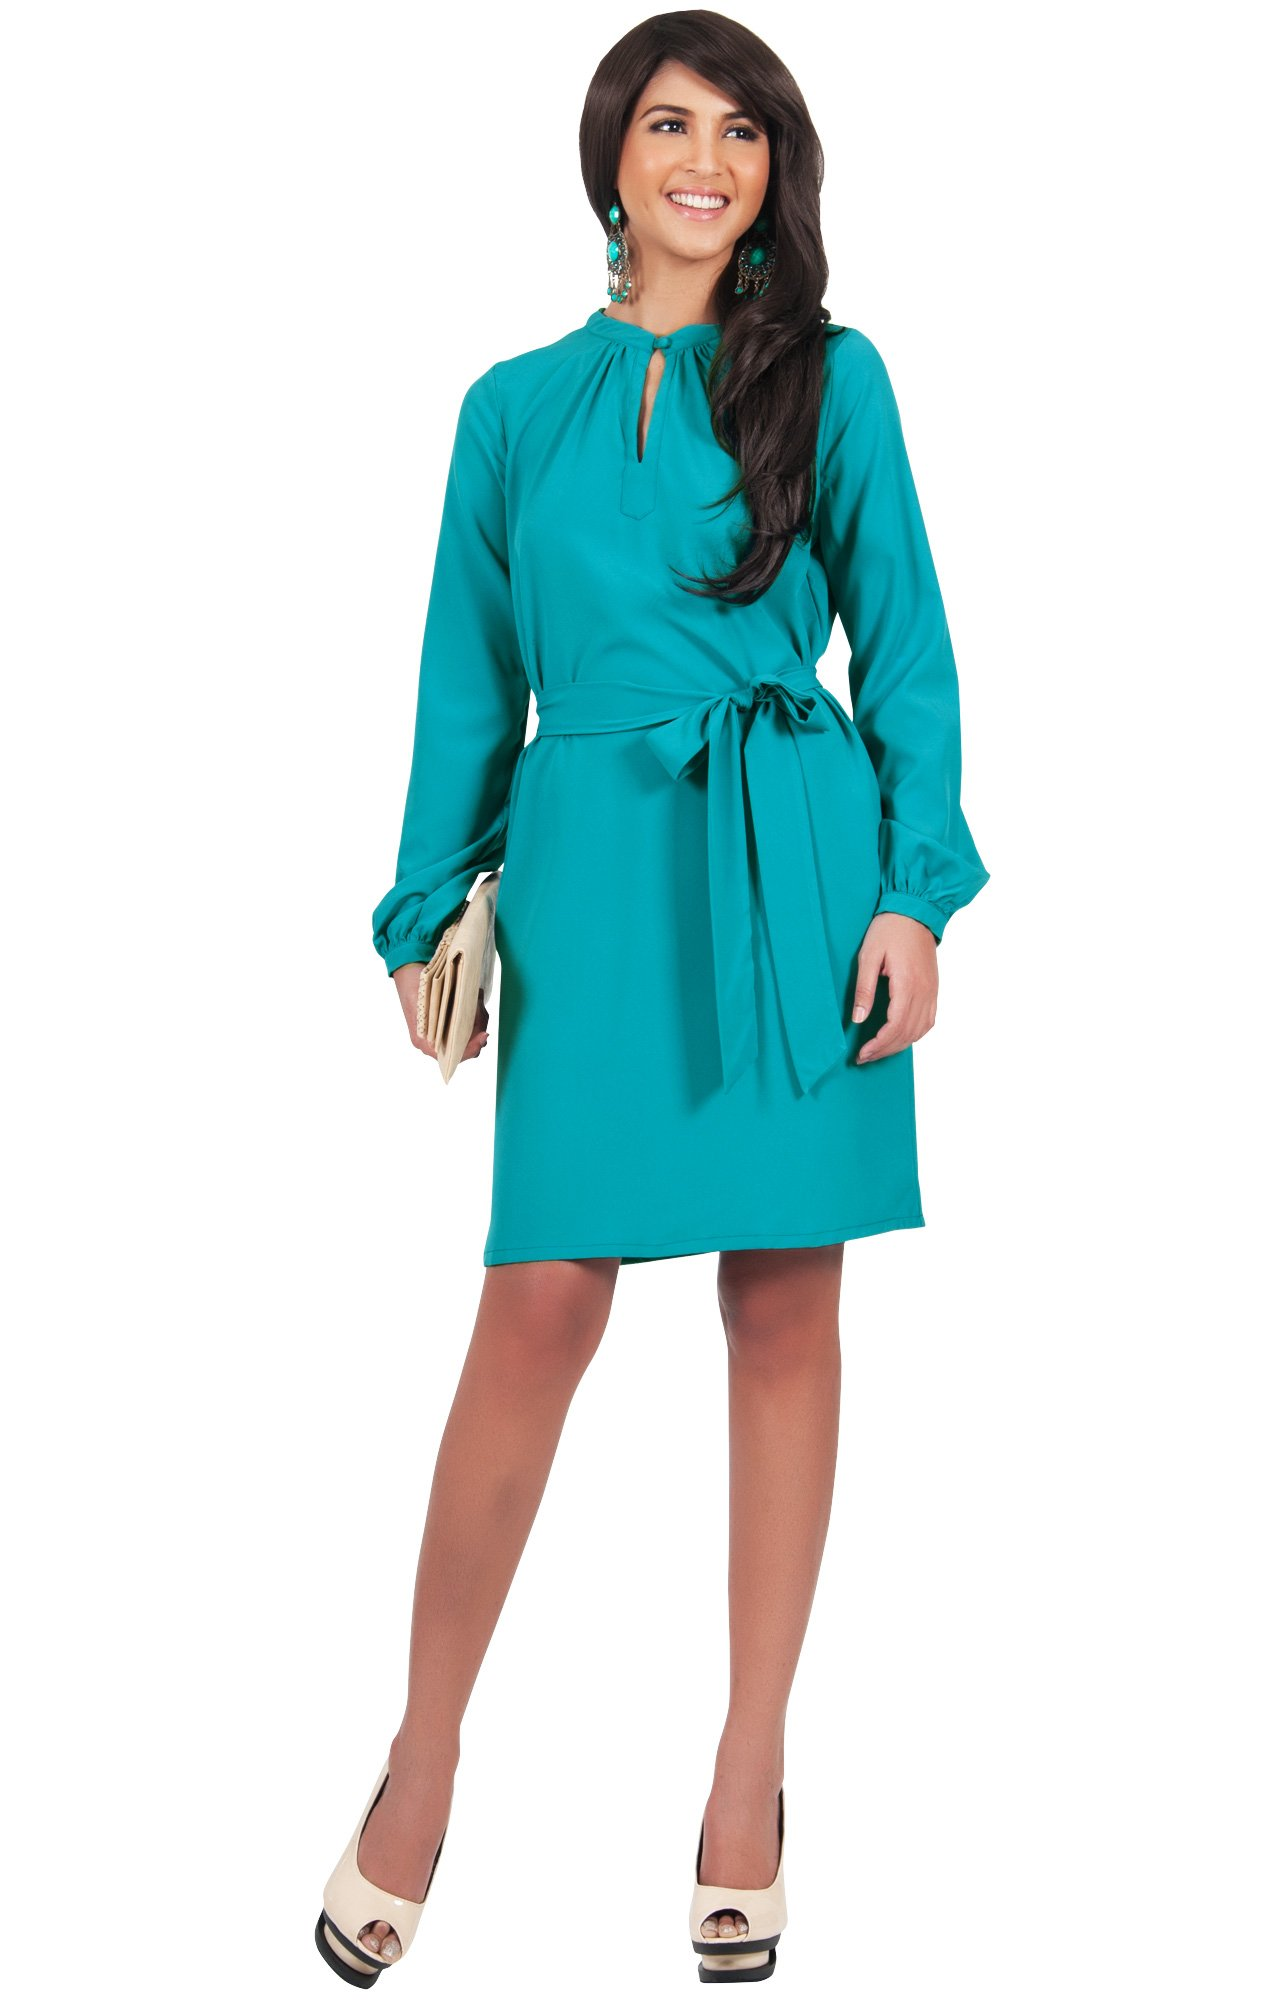 KOH KOH Plus Size Womens Long Sleeve with Sleeves Formal Work Office Casual Versatile Evening Day Fall Travel Party Wedding Guest Short Knee Length Midi Dress Dresses, Blue Teal 2X 18-20 (3)